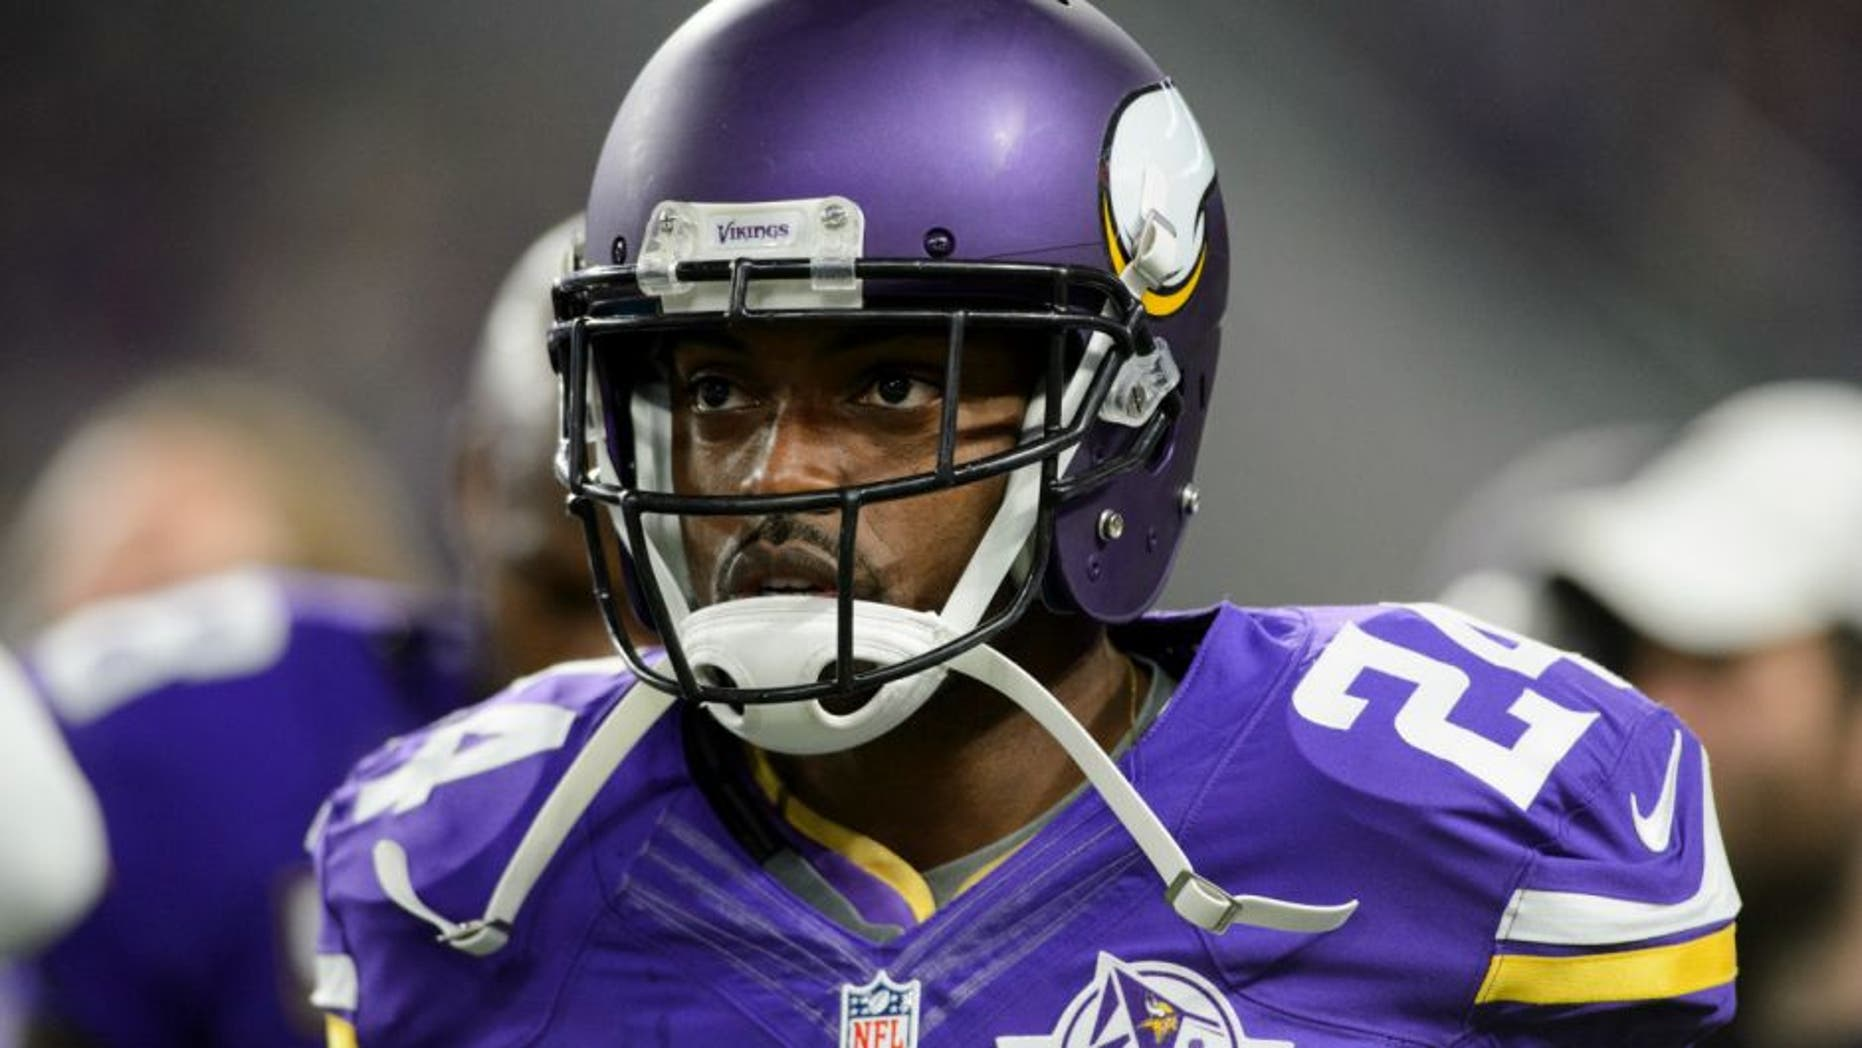 MINNEAPOLIS, MN - SEPTEMBER 18: Captain Munnerlyn #24 of the Minnesota Vikings looks on before the game against the Green Bay Packers on September 18, 2016 at US Bank Stadium in Minneapolis, Minnesota. The Vikings defeated the Packers 17-14. (Photo by Hannah Foslien/Getty Images)